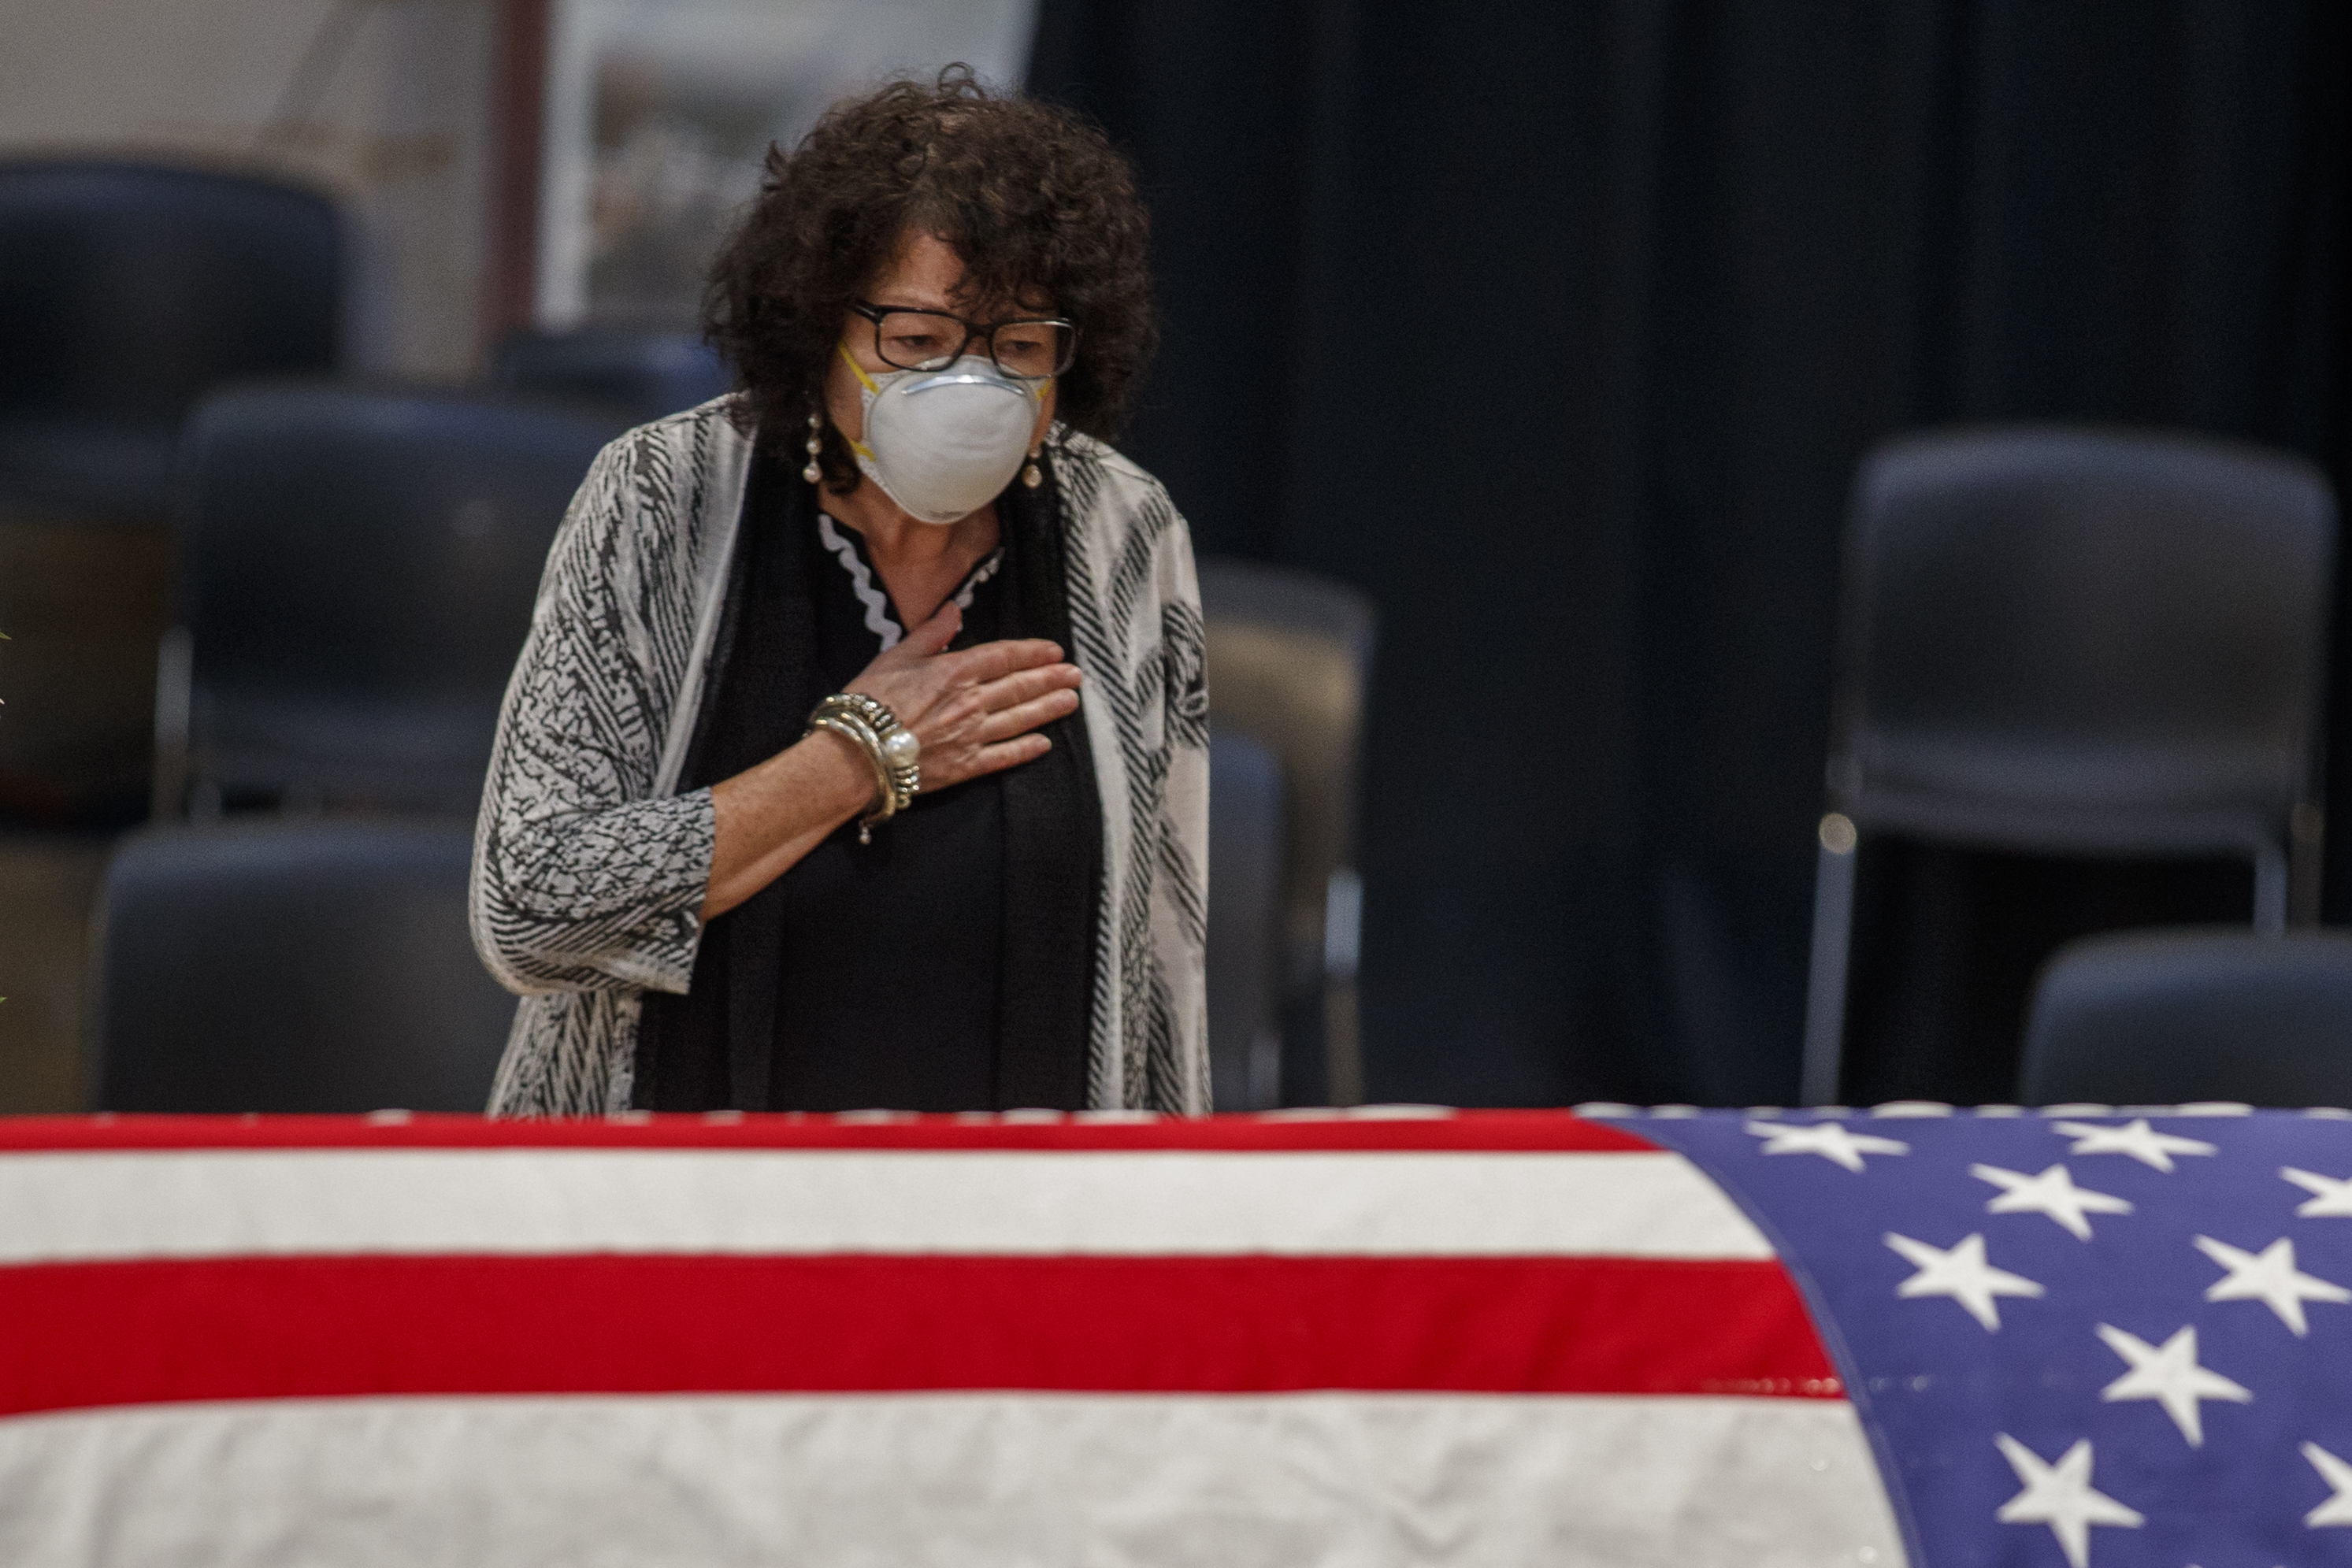 US Supreme Court Sonia Sotomayor pays her respects to Rep. John Lewis at the Capitol in Washington, DC.